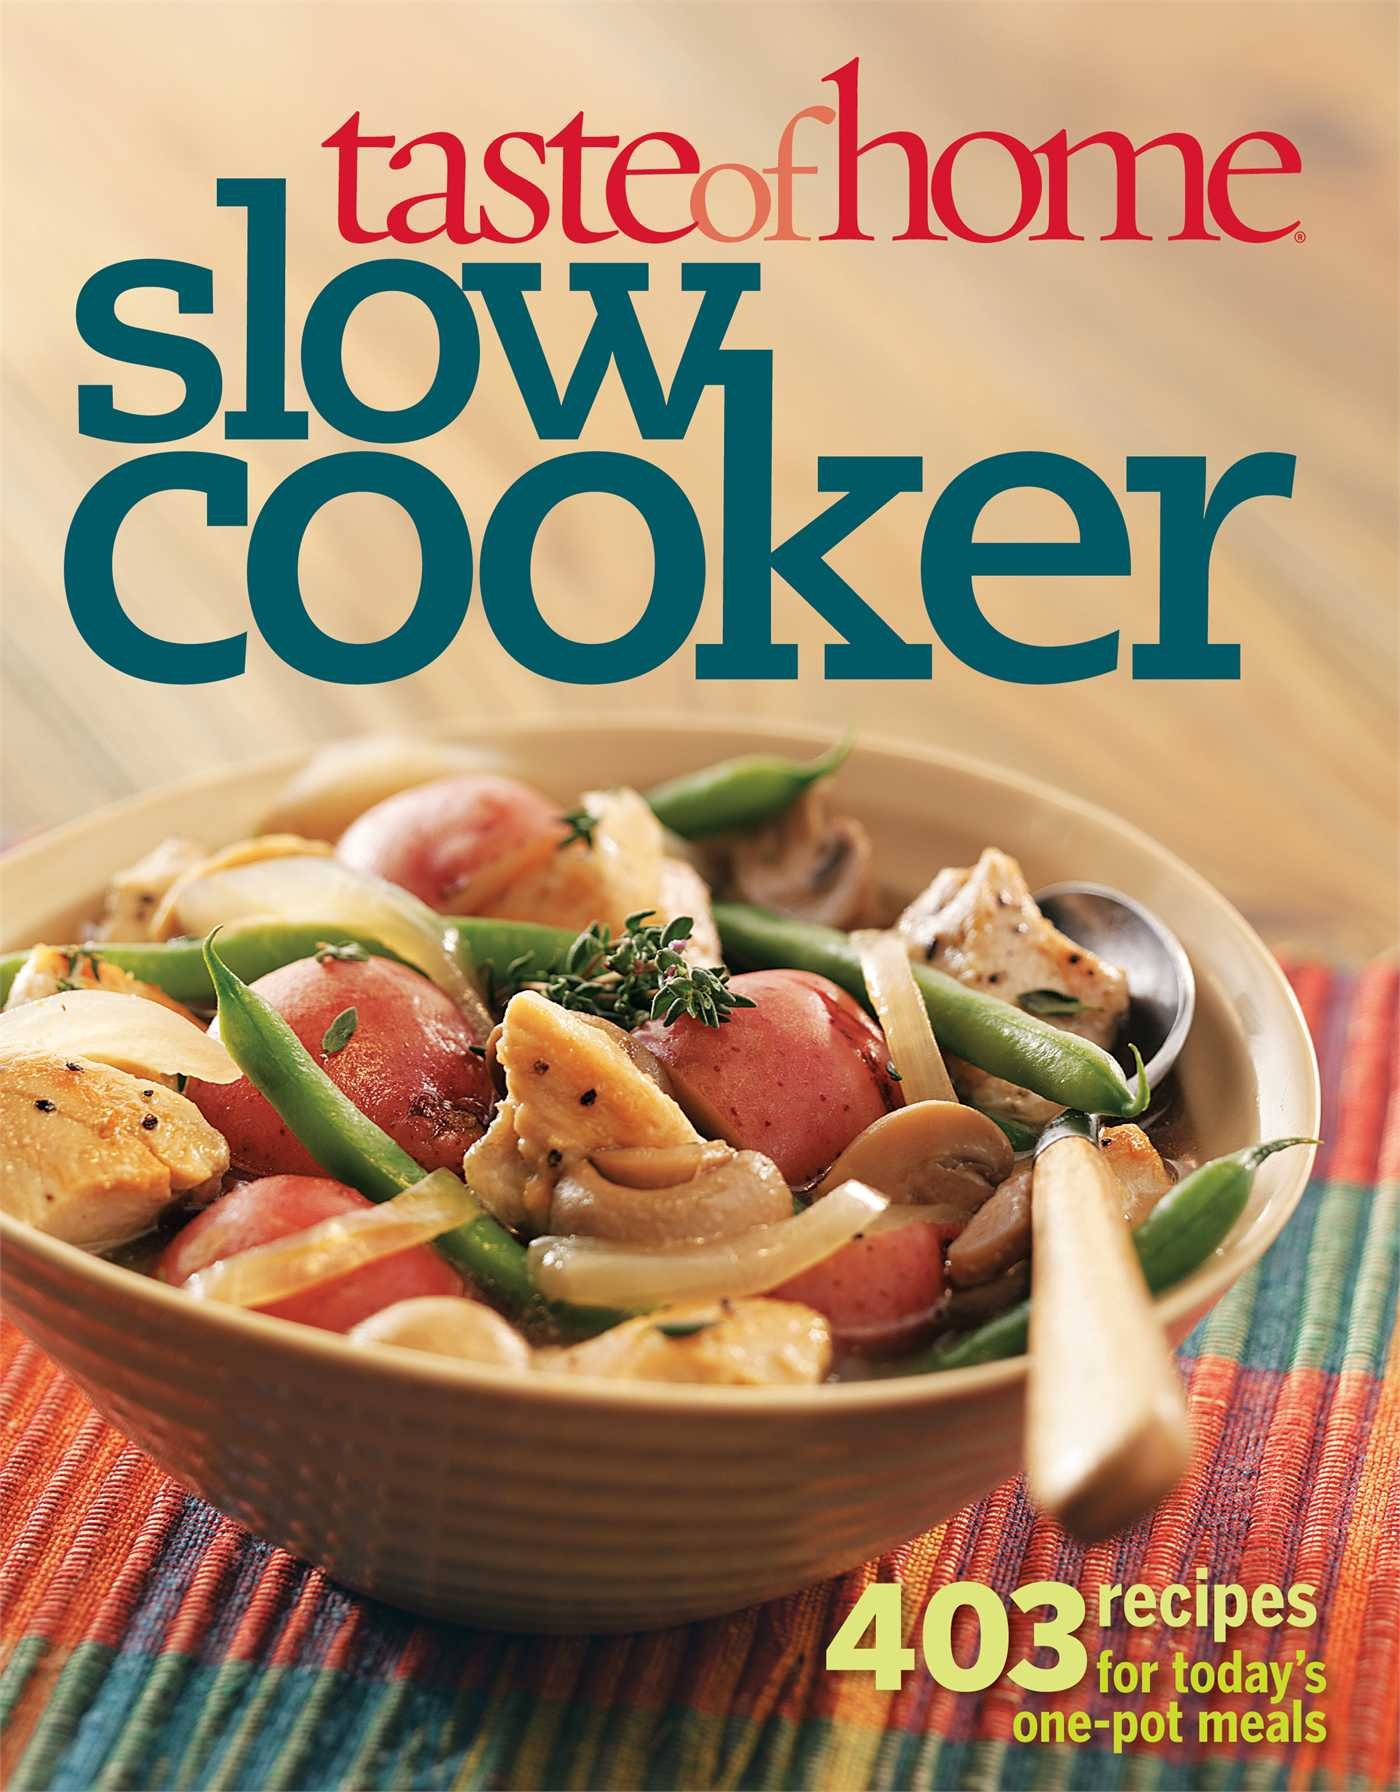 Taste of Home Slow Cooker: 403 Recipes for Today's One- Pot Meals (Taste of Home  Annual Recipes): Taste Of Home: 9780898218022: Amazon.com: Books